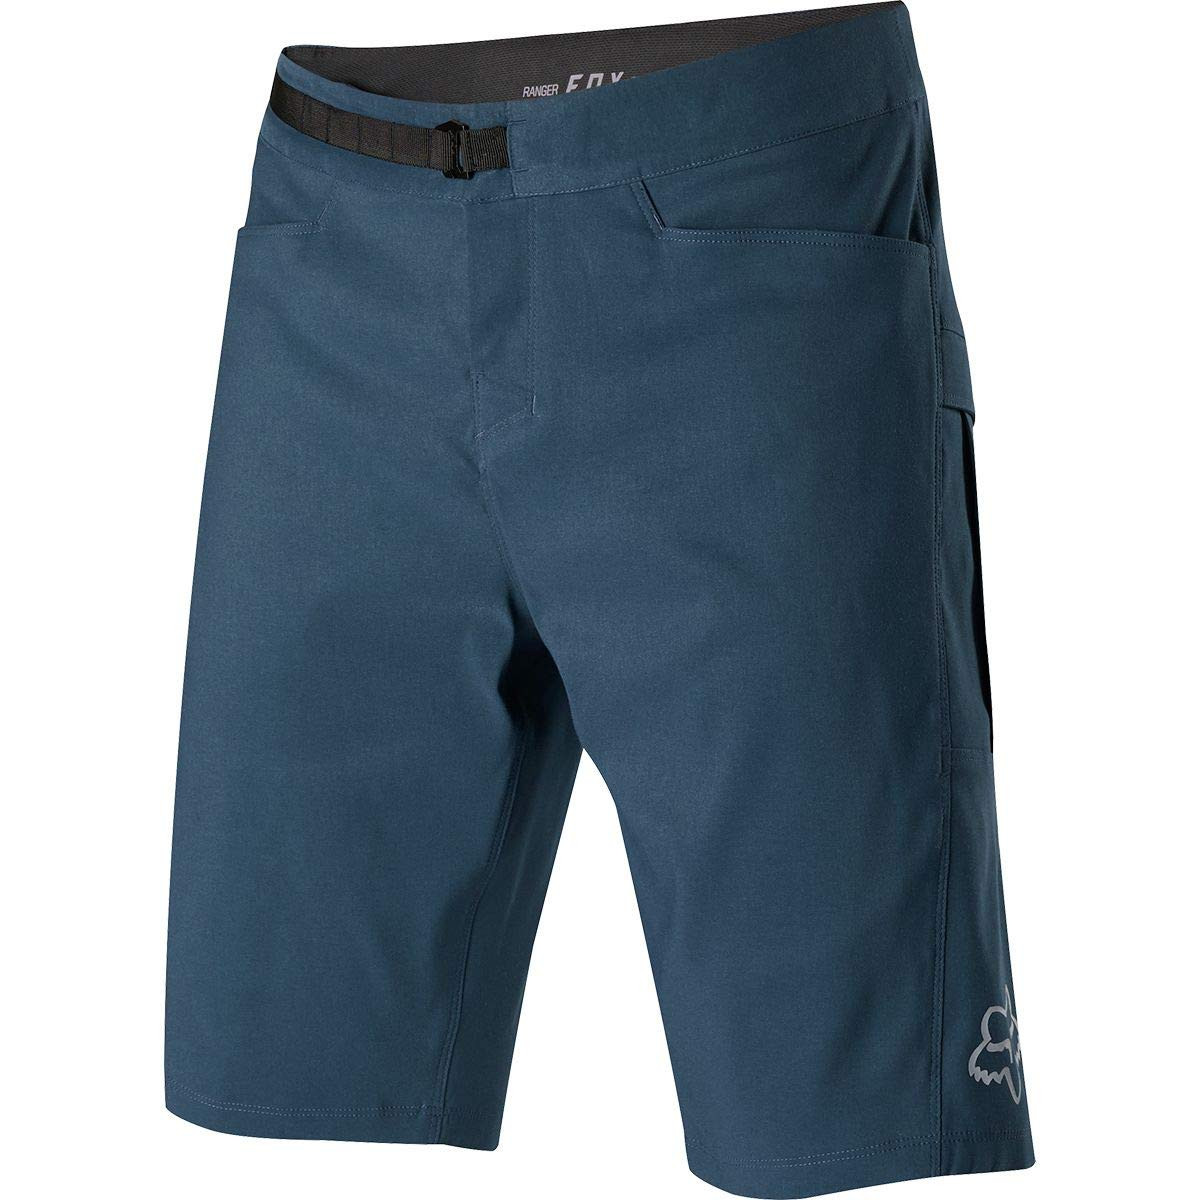 Fox Racing Ranger Cargo Short - Men's Navy, 40 by Fox Racing